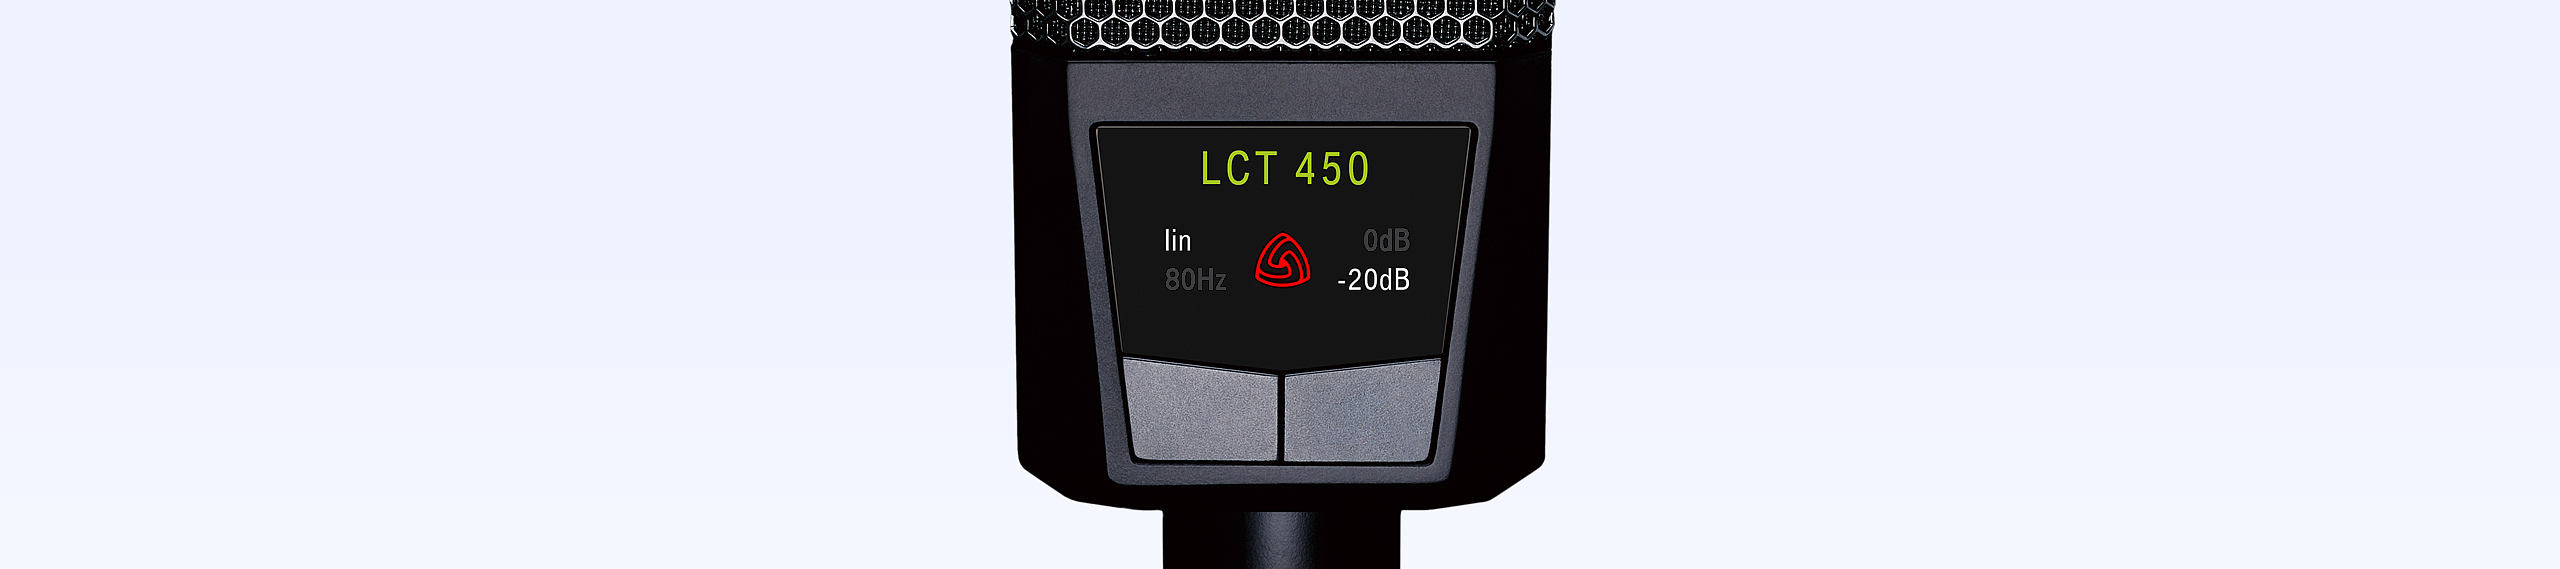 LCT 450 automatic attenuation